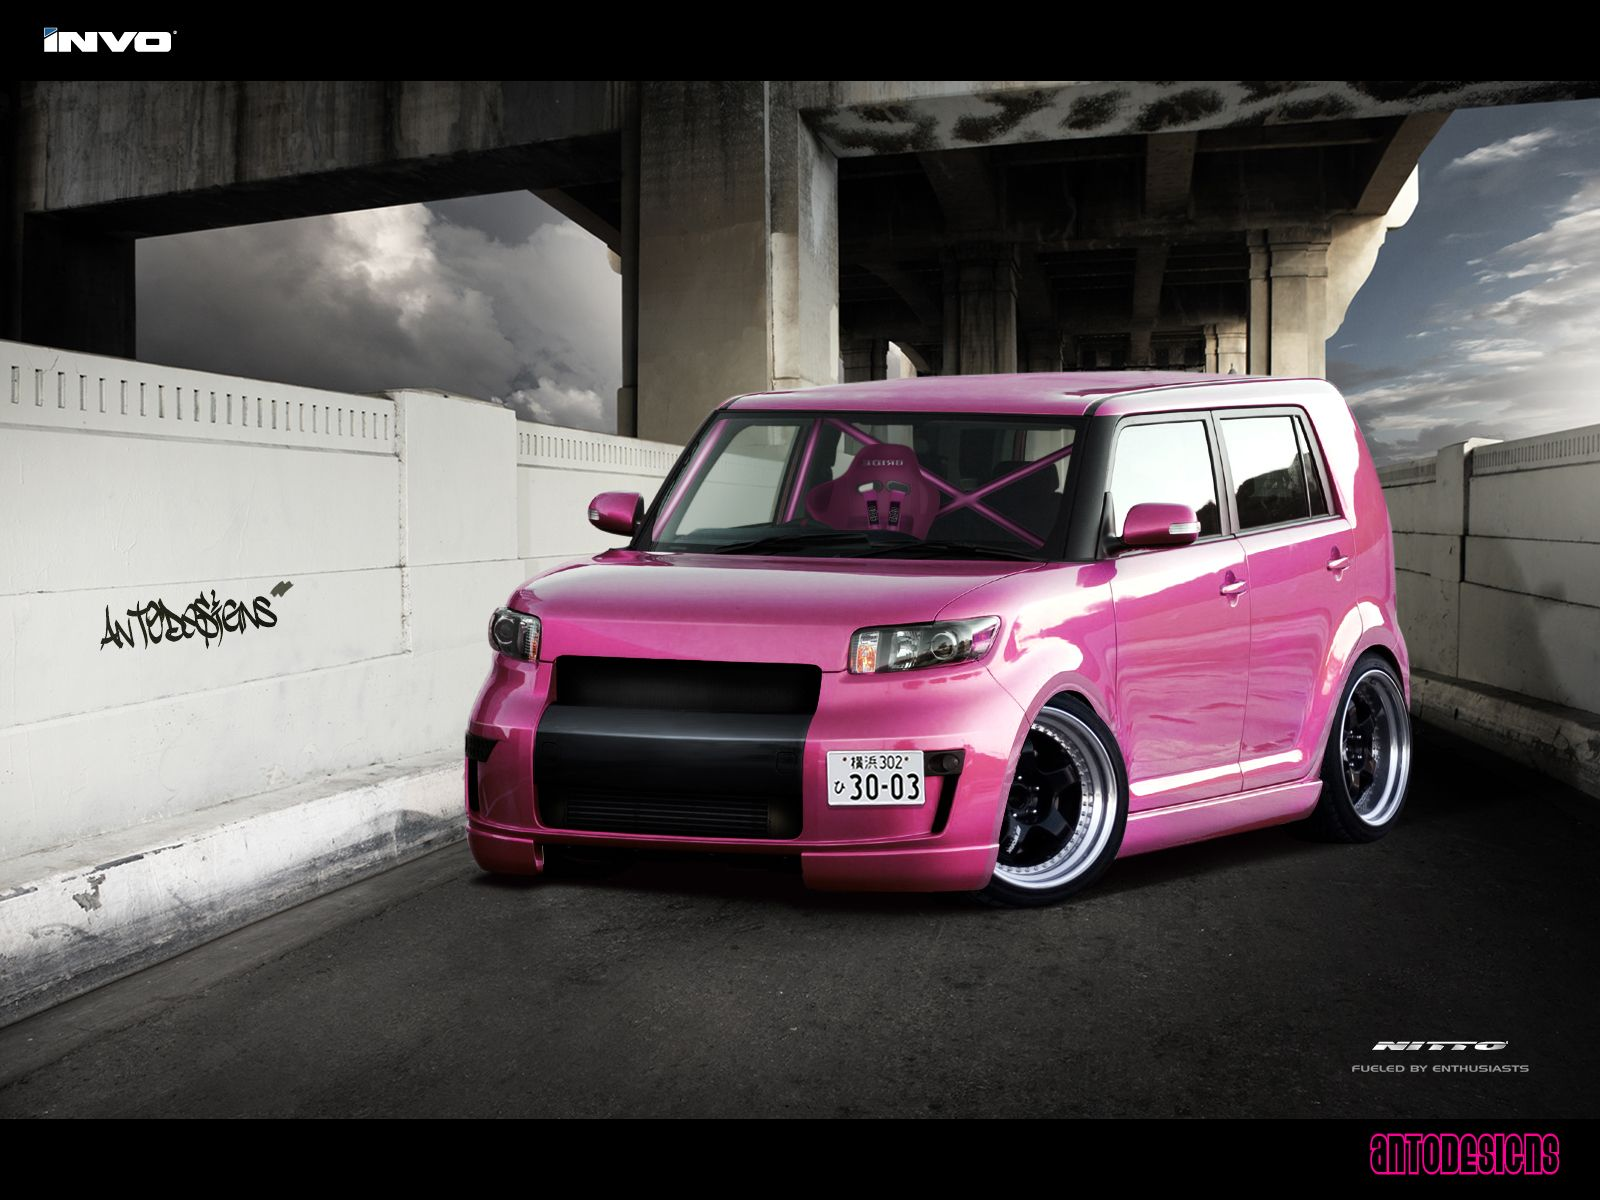 Perfect scion xb to support national denim day may 14th and the fight against